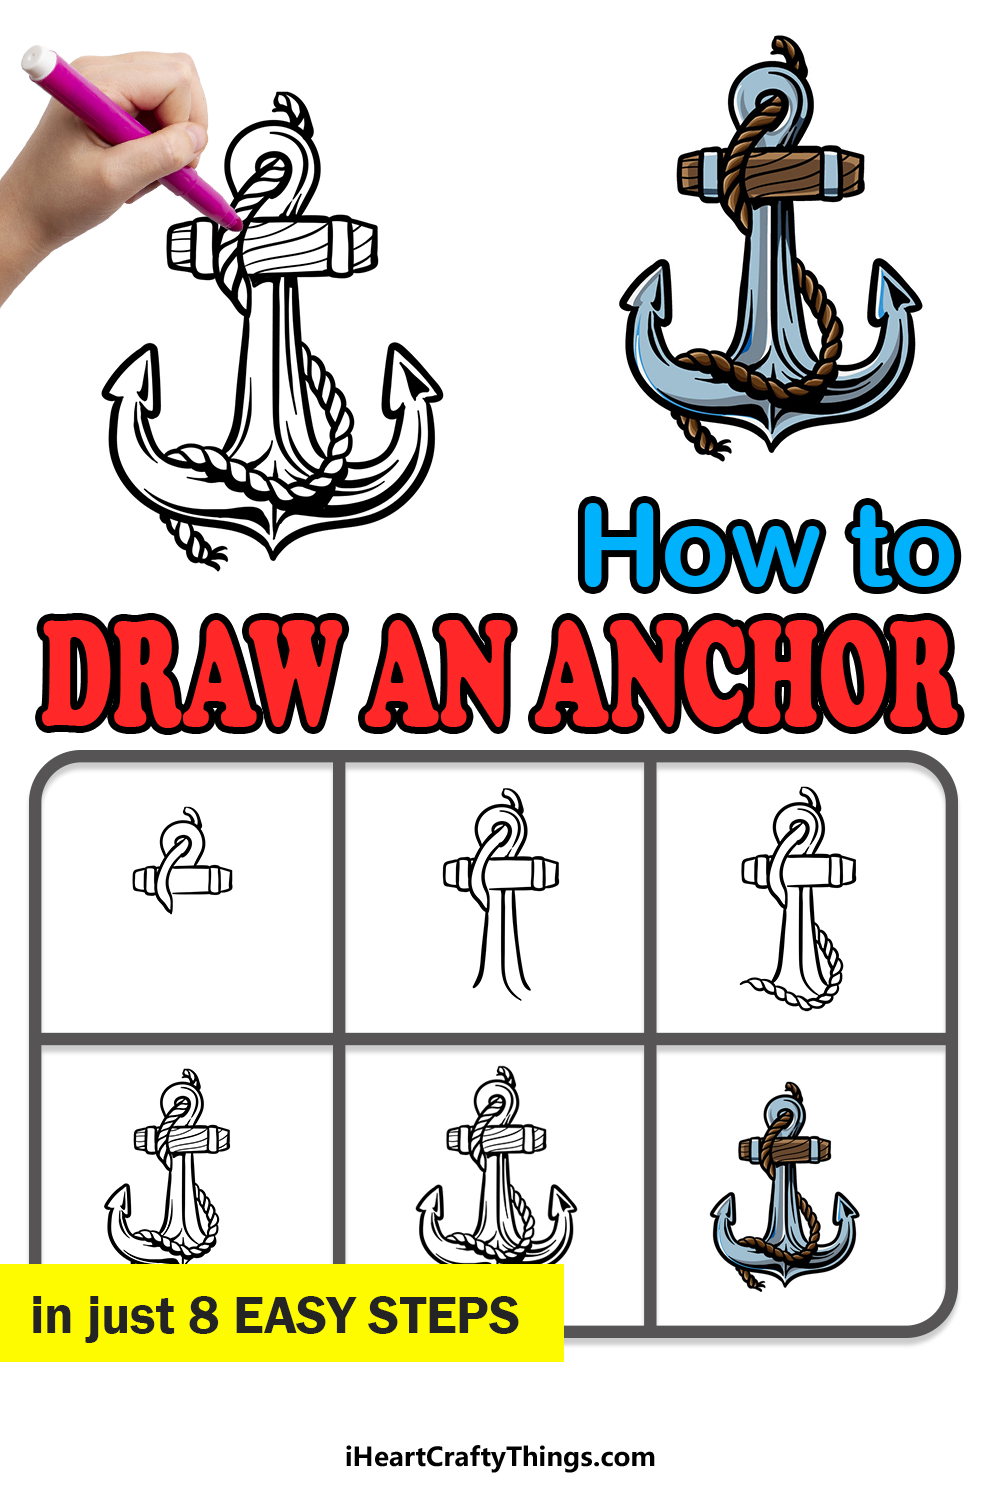 how to draw an anchor in 8 easy steps